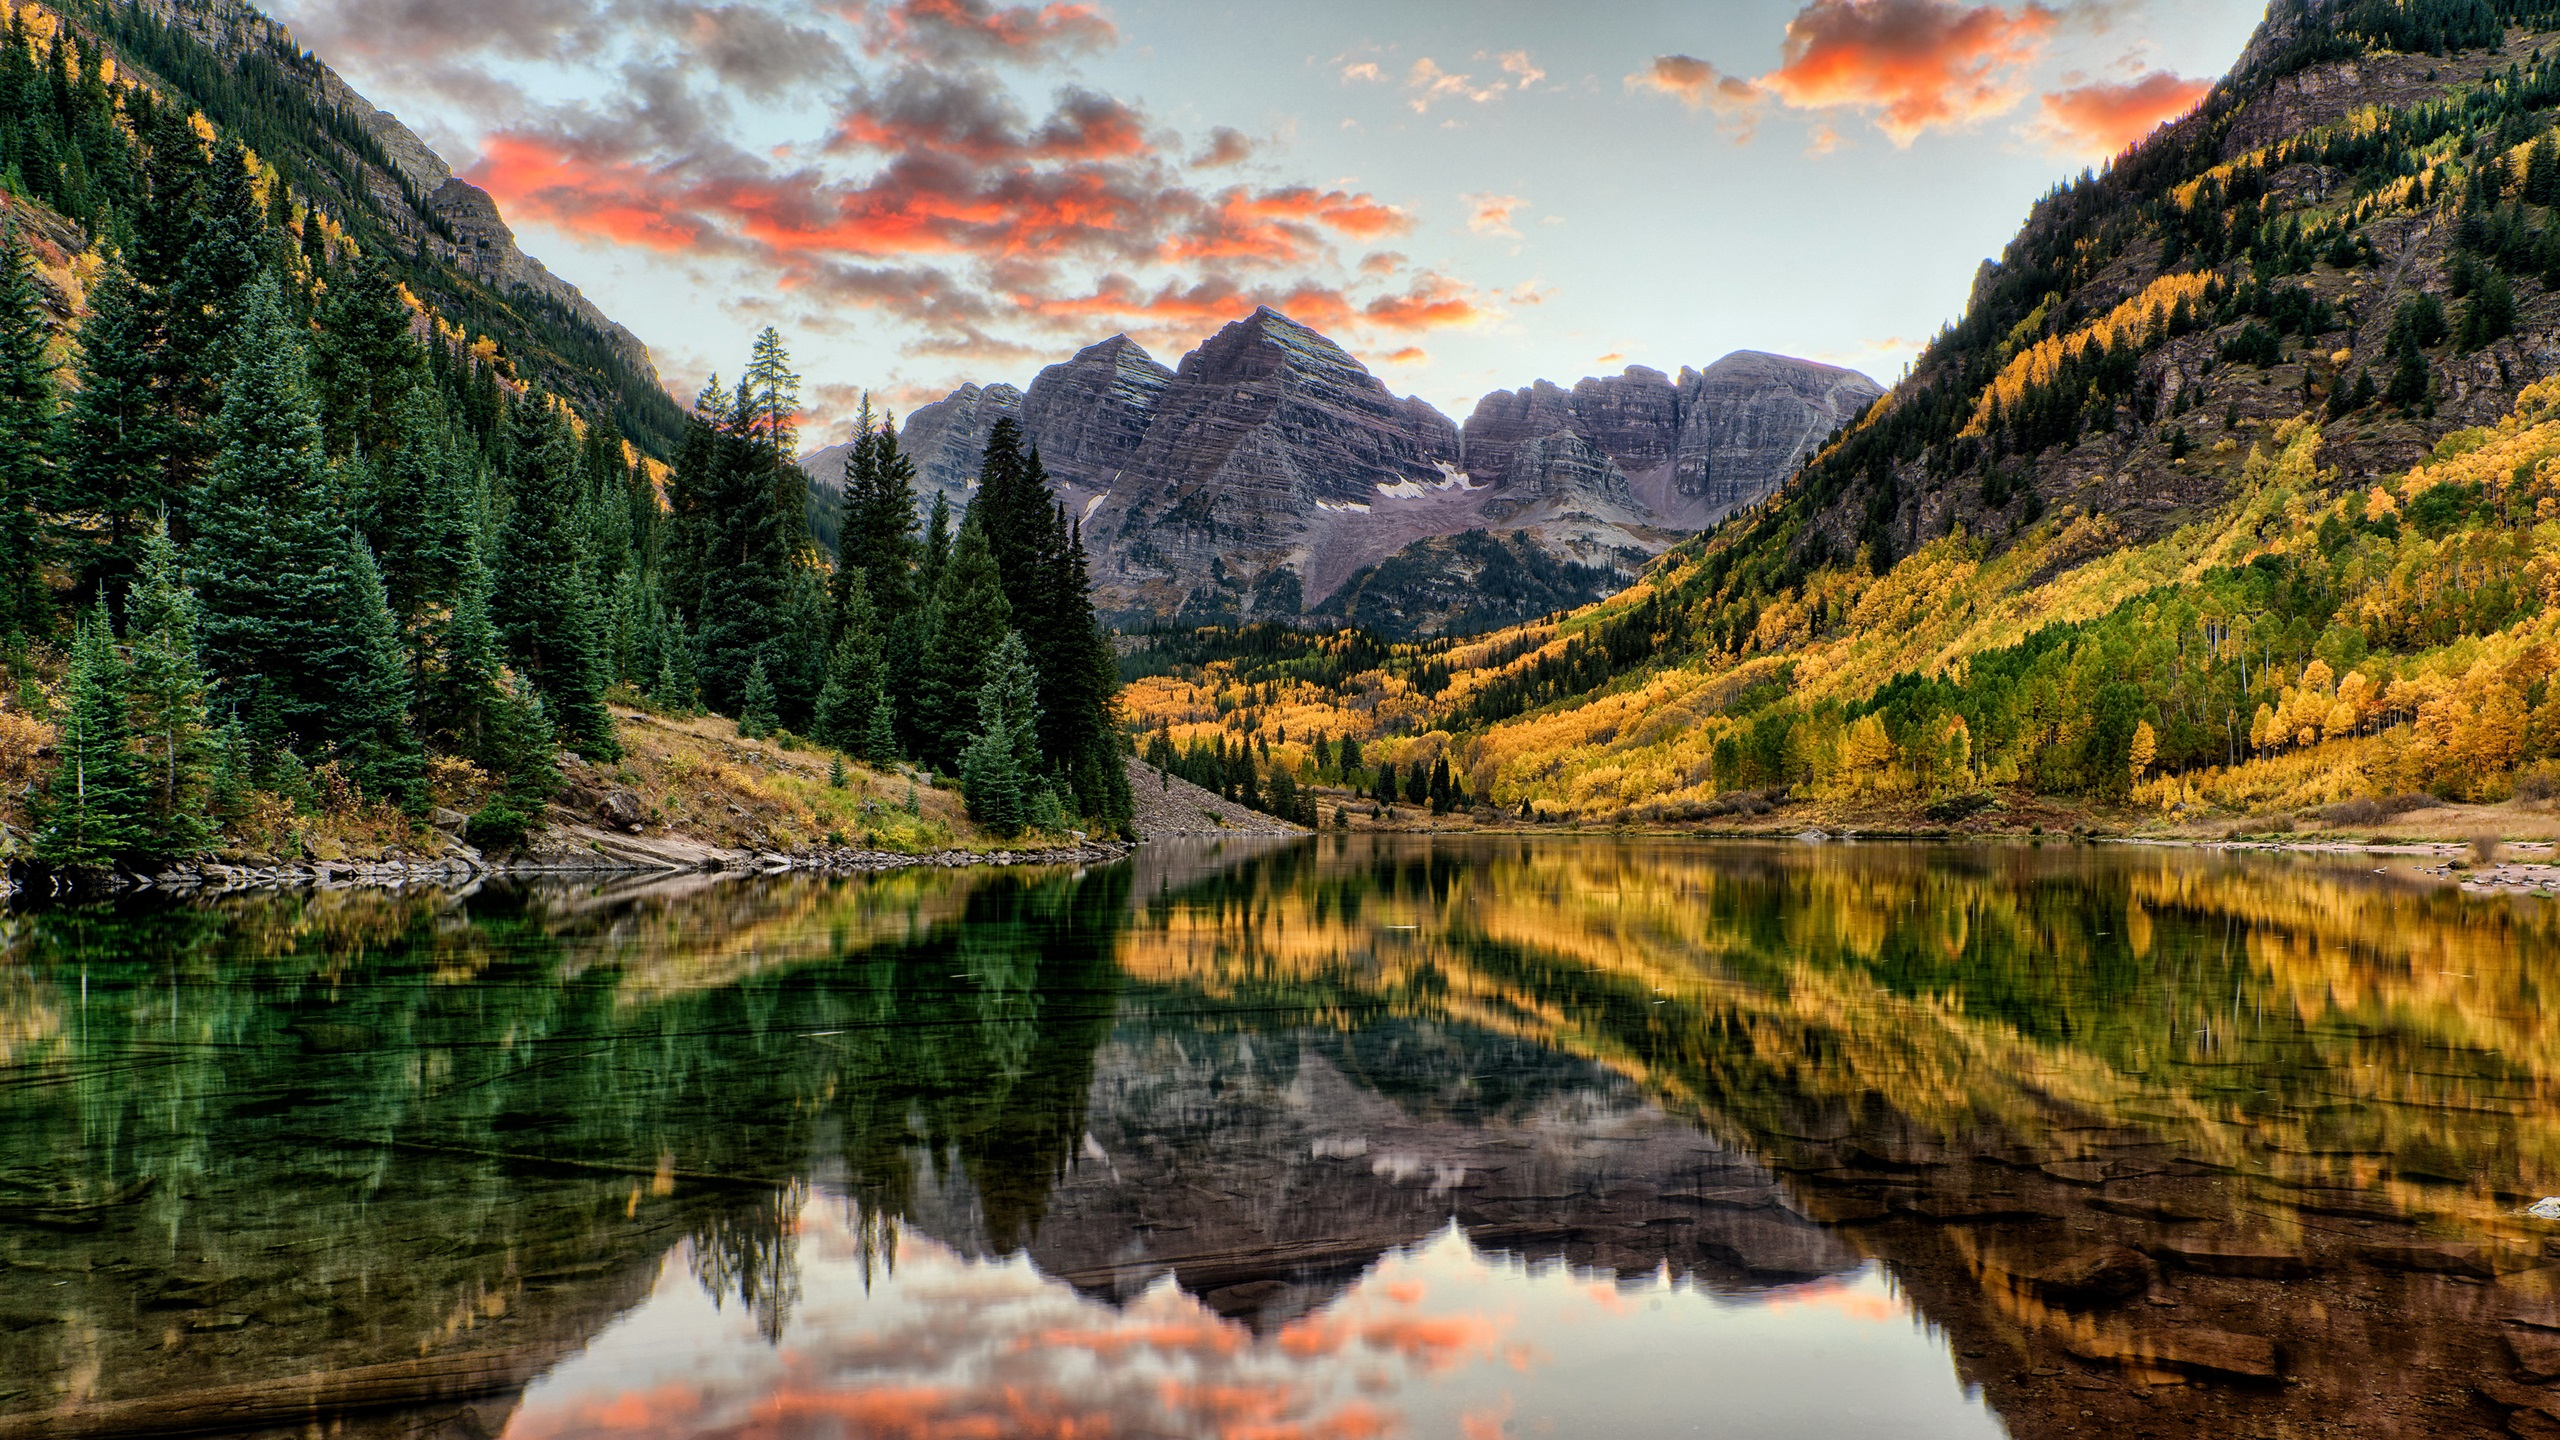 Beautiful Fall Location Wallpapers Wallpaper Maroon Bells Mountains Trees Lake Autumn